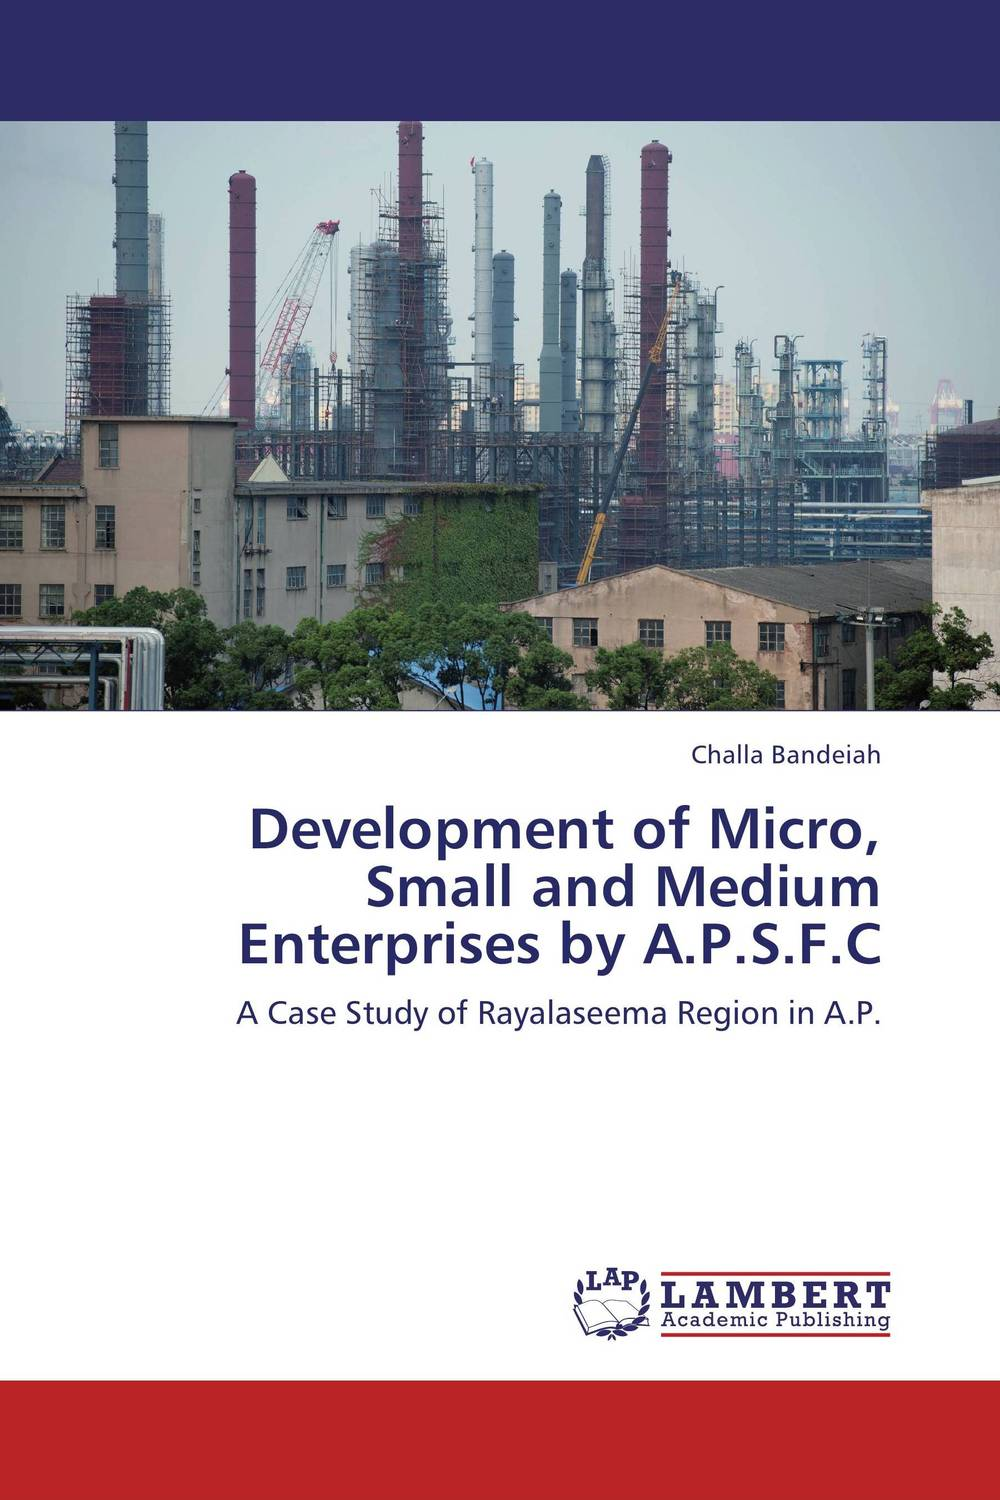 Development of Micro, Small and Medium Enterprises by A.P.S.F.C jaynal ud din ahmed and mohd abdul rashid institutional finance for micro and small entreprises in india